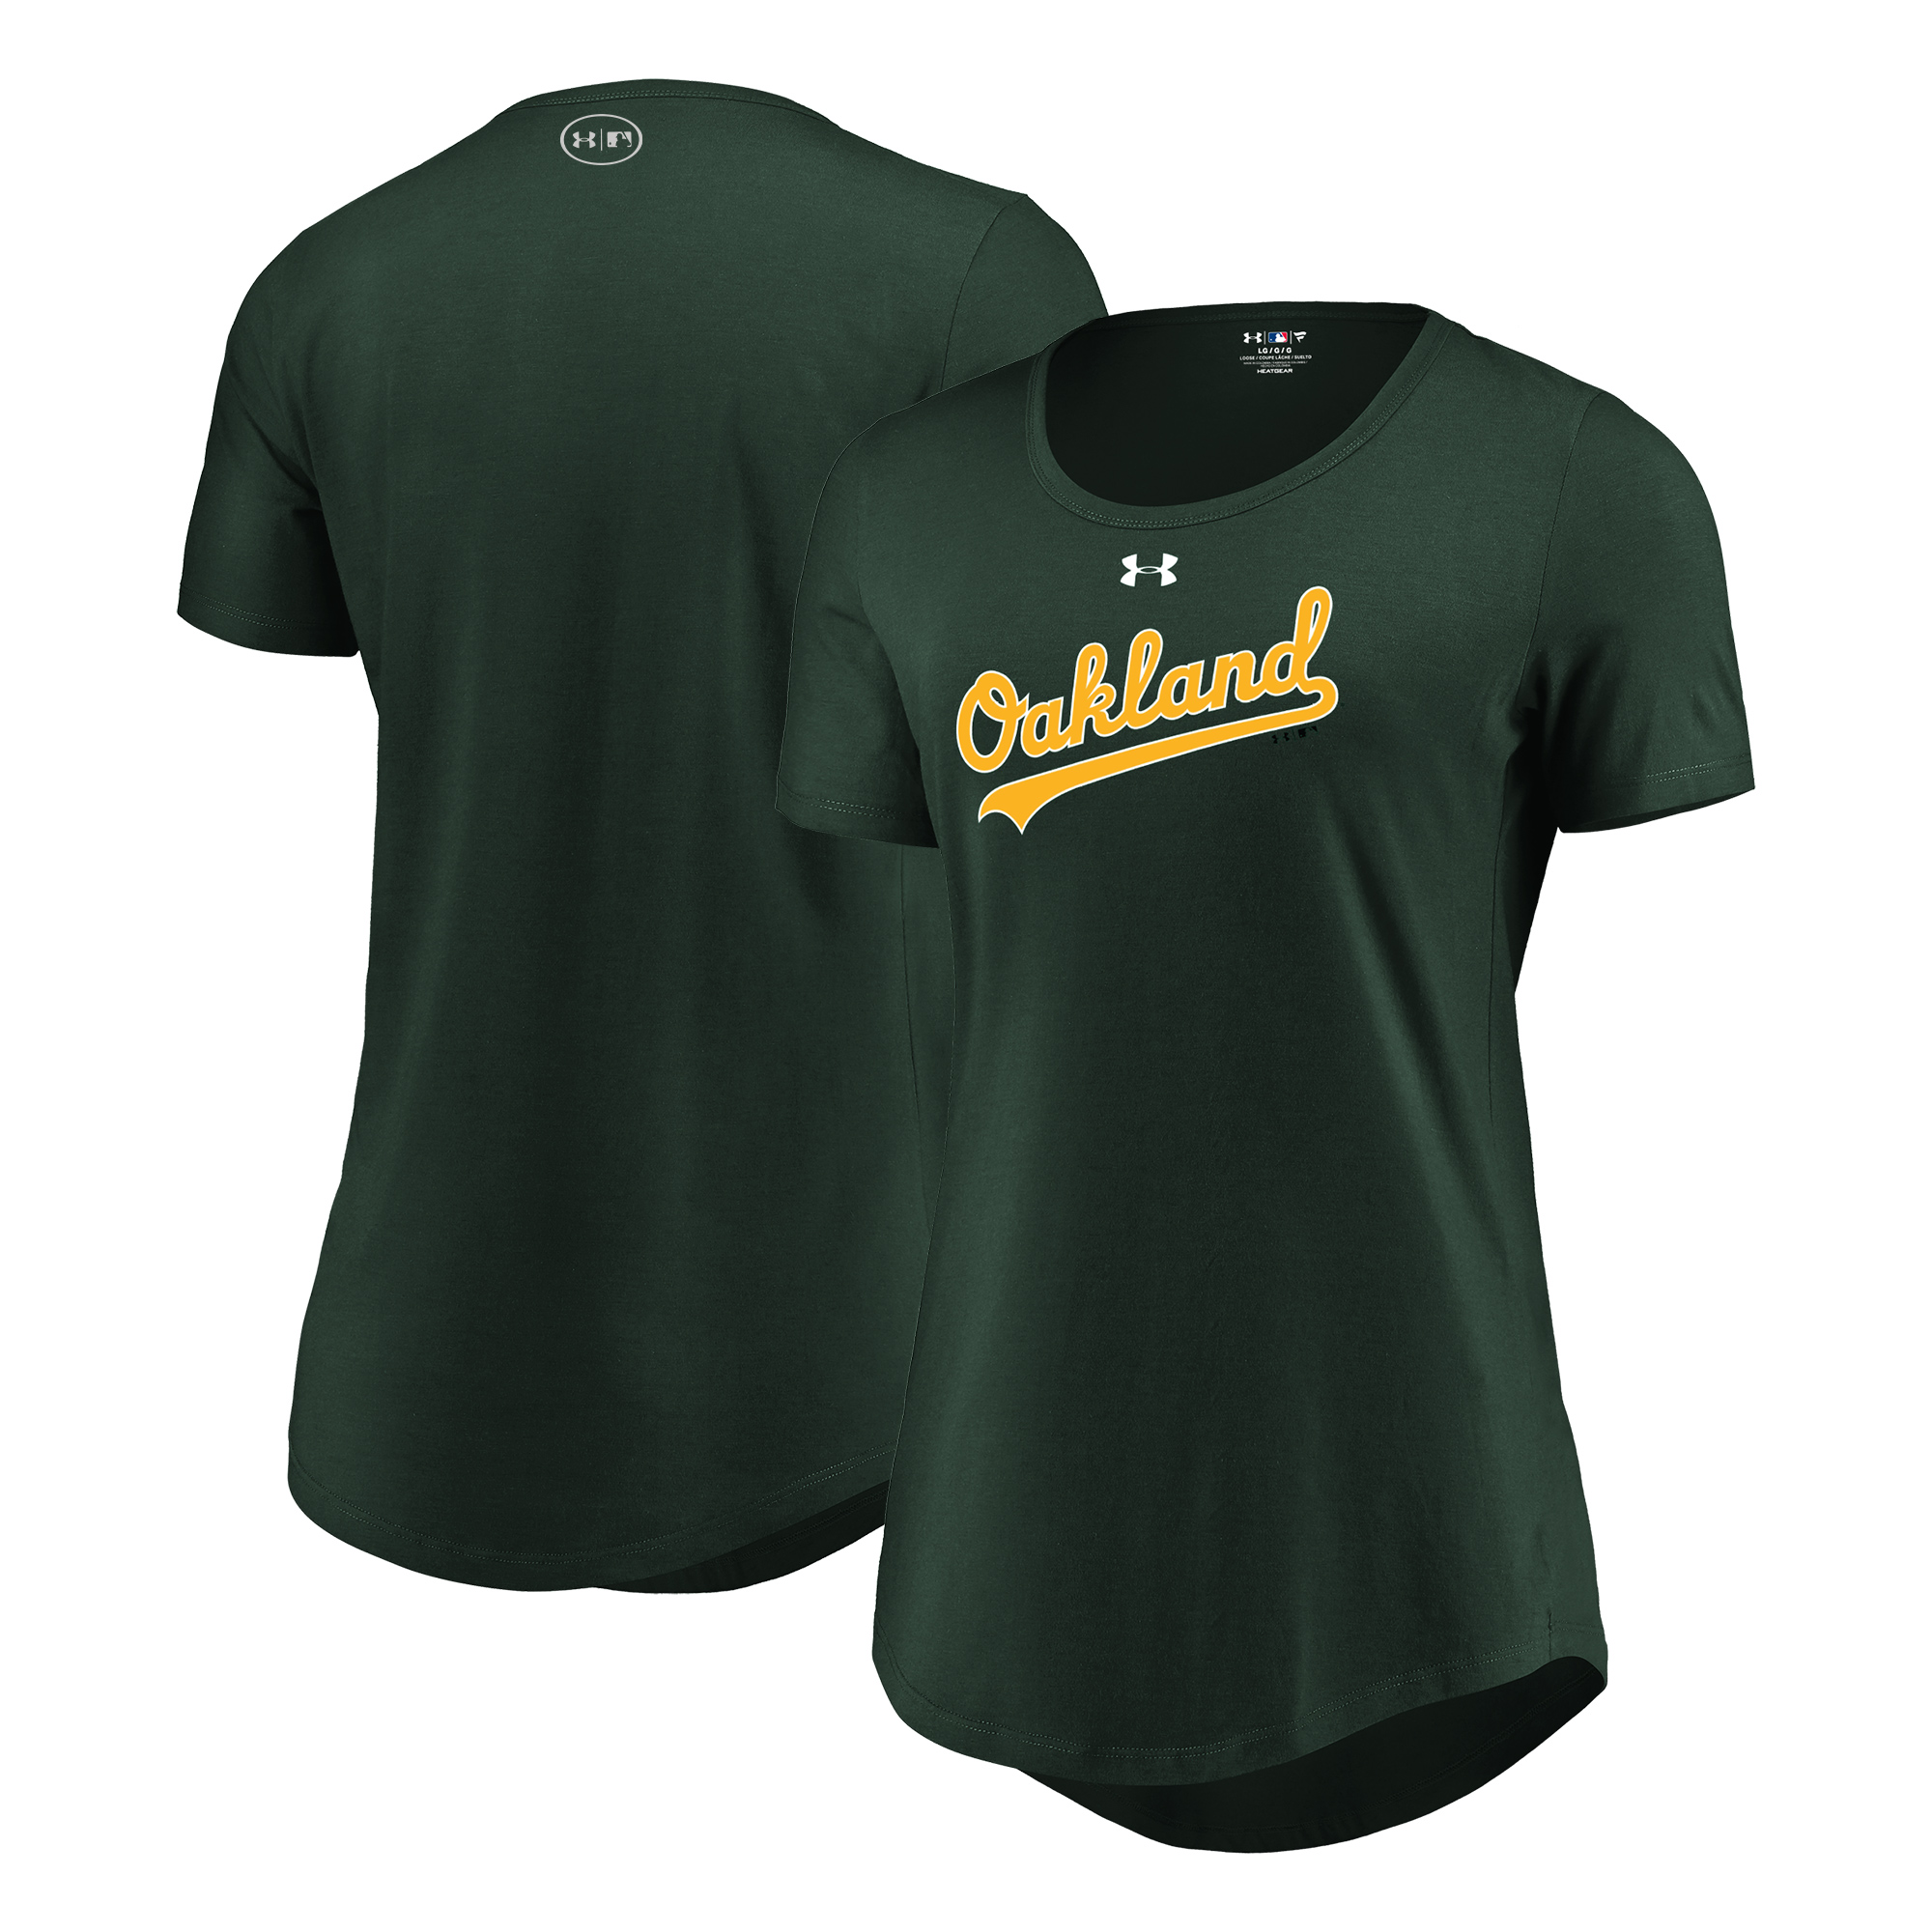 Oakland Athletics Under Armour Women's Passion Road Team Font Scoop Performance Tri-Blend T-Shirt - Green